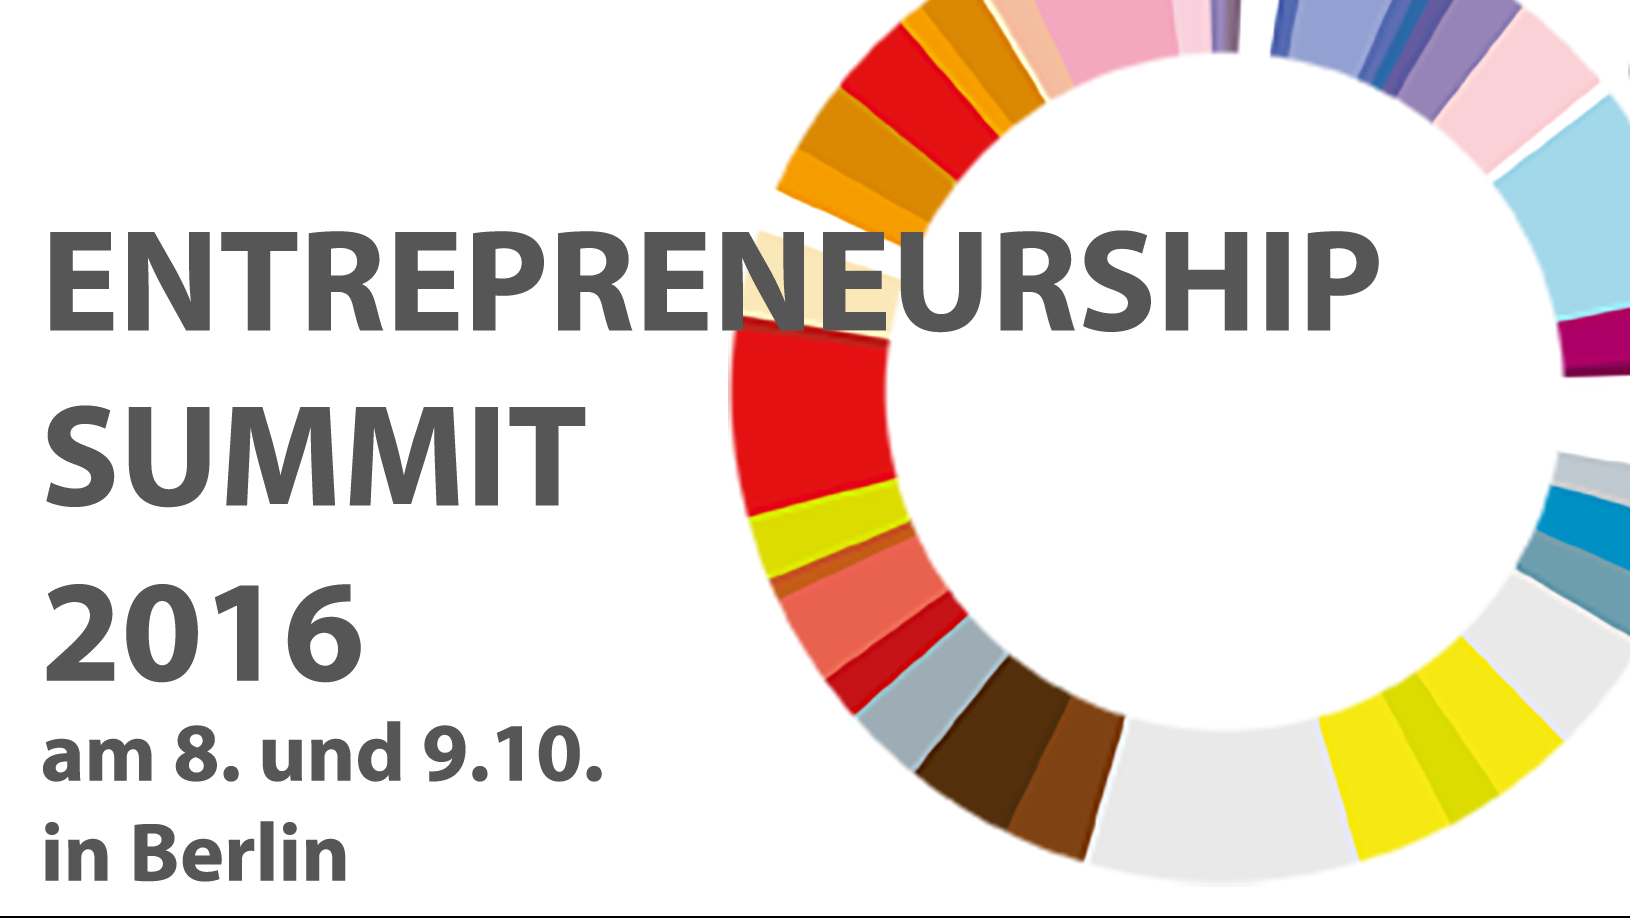 Join: Keynote beim Entrepreneurship Summit am 8. Oktober in Berlin